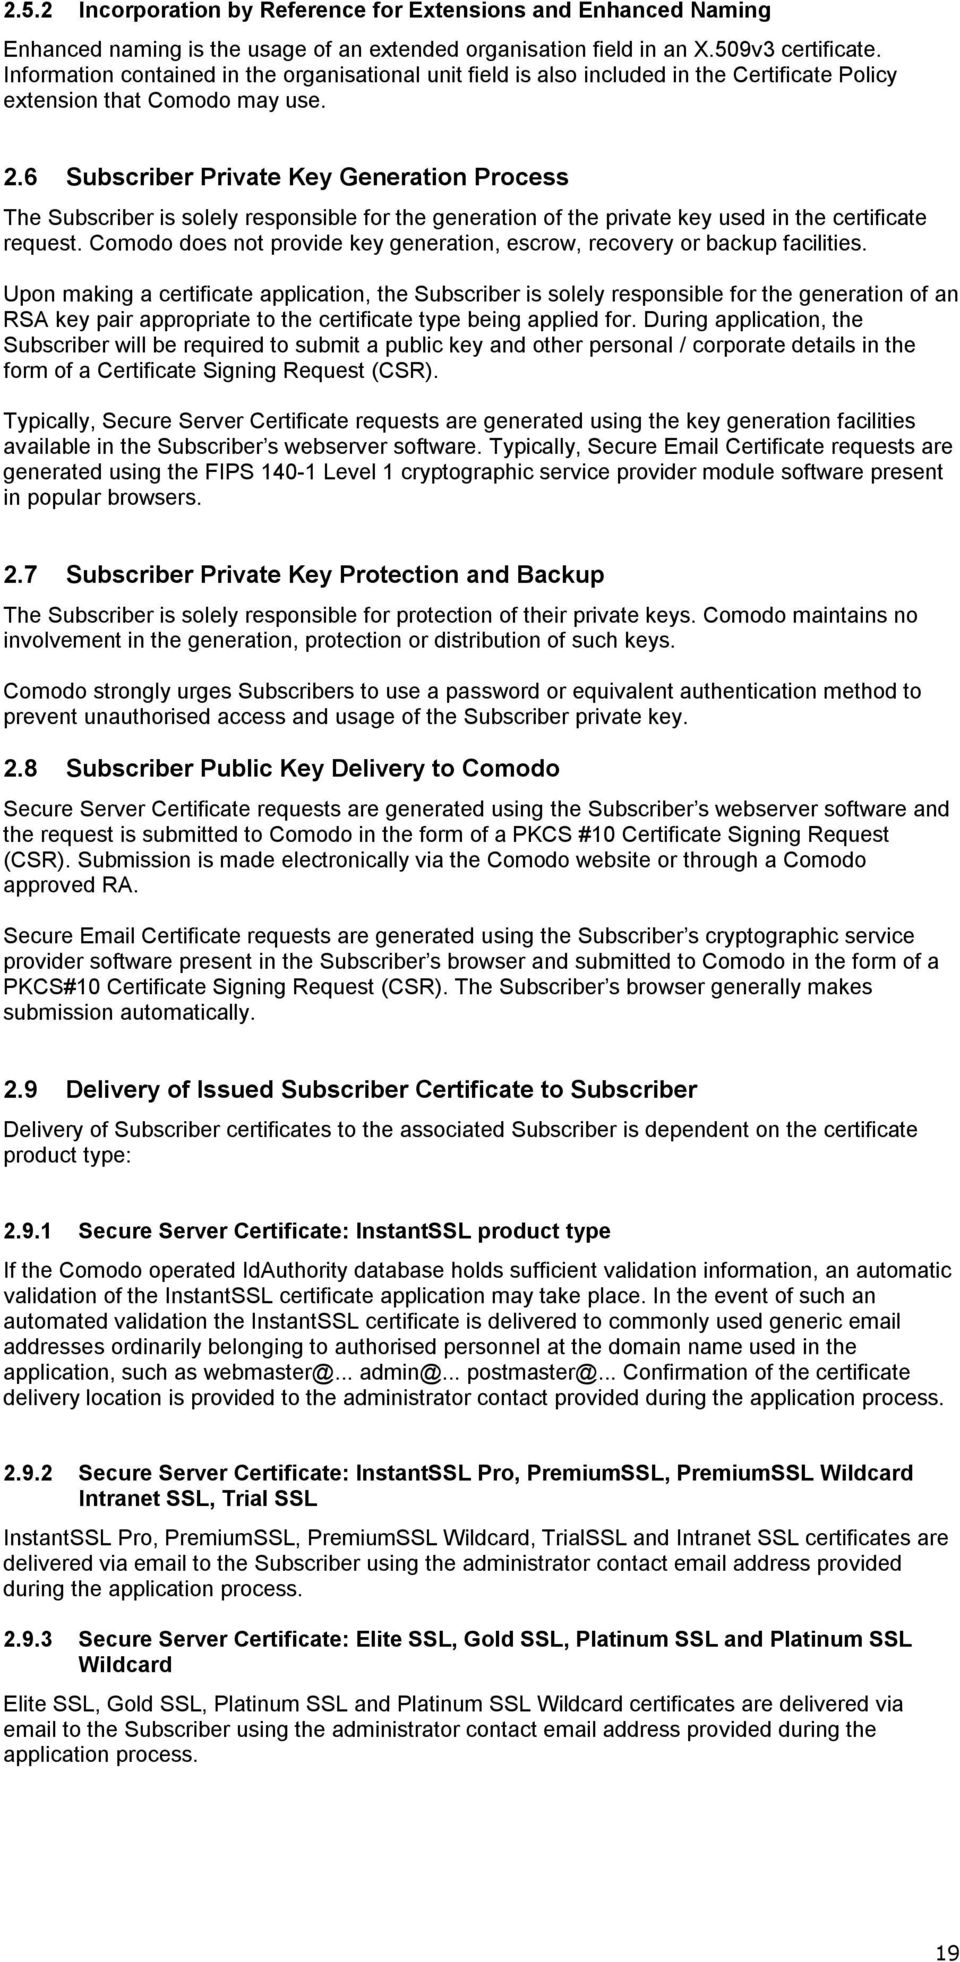 6 Subscriber Private Key Generation Process The Subscriber is solely responsible for the generation of the private key used in the certificate request.